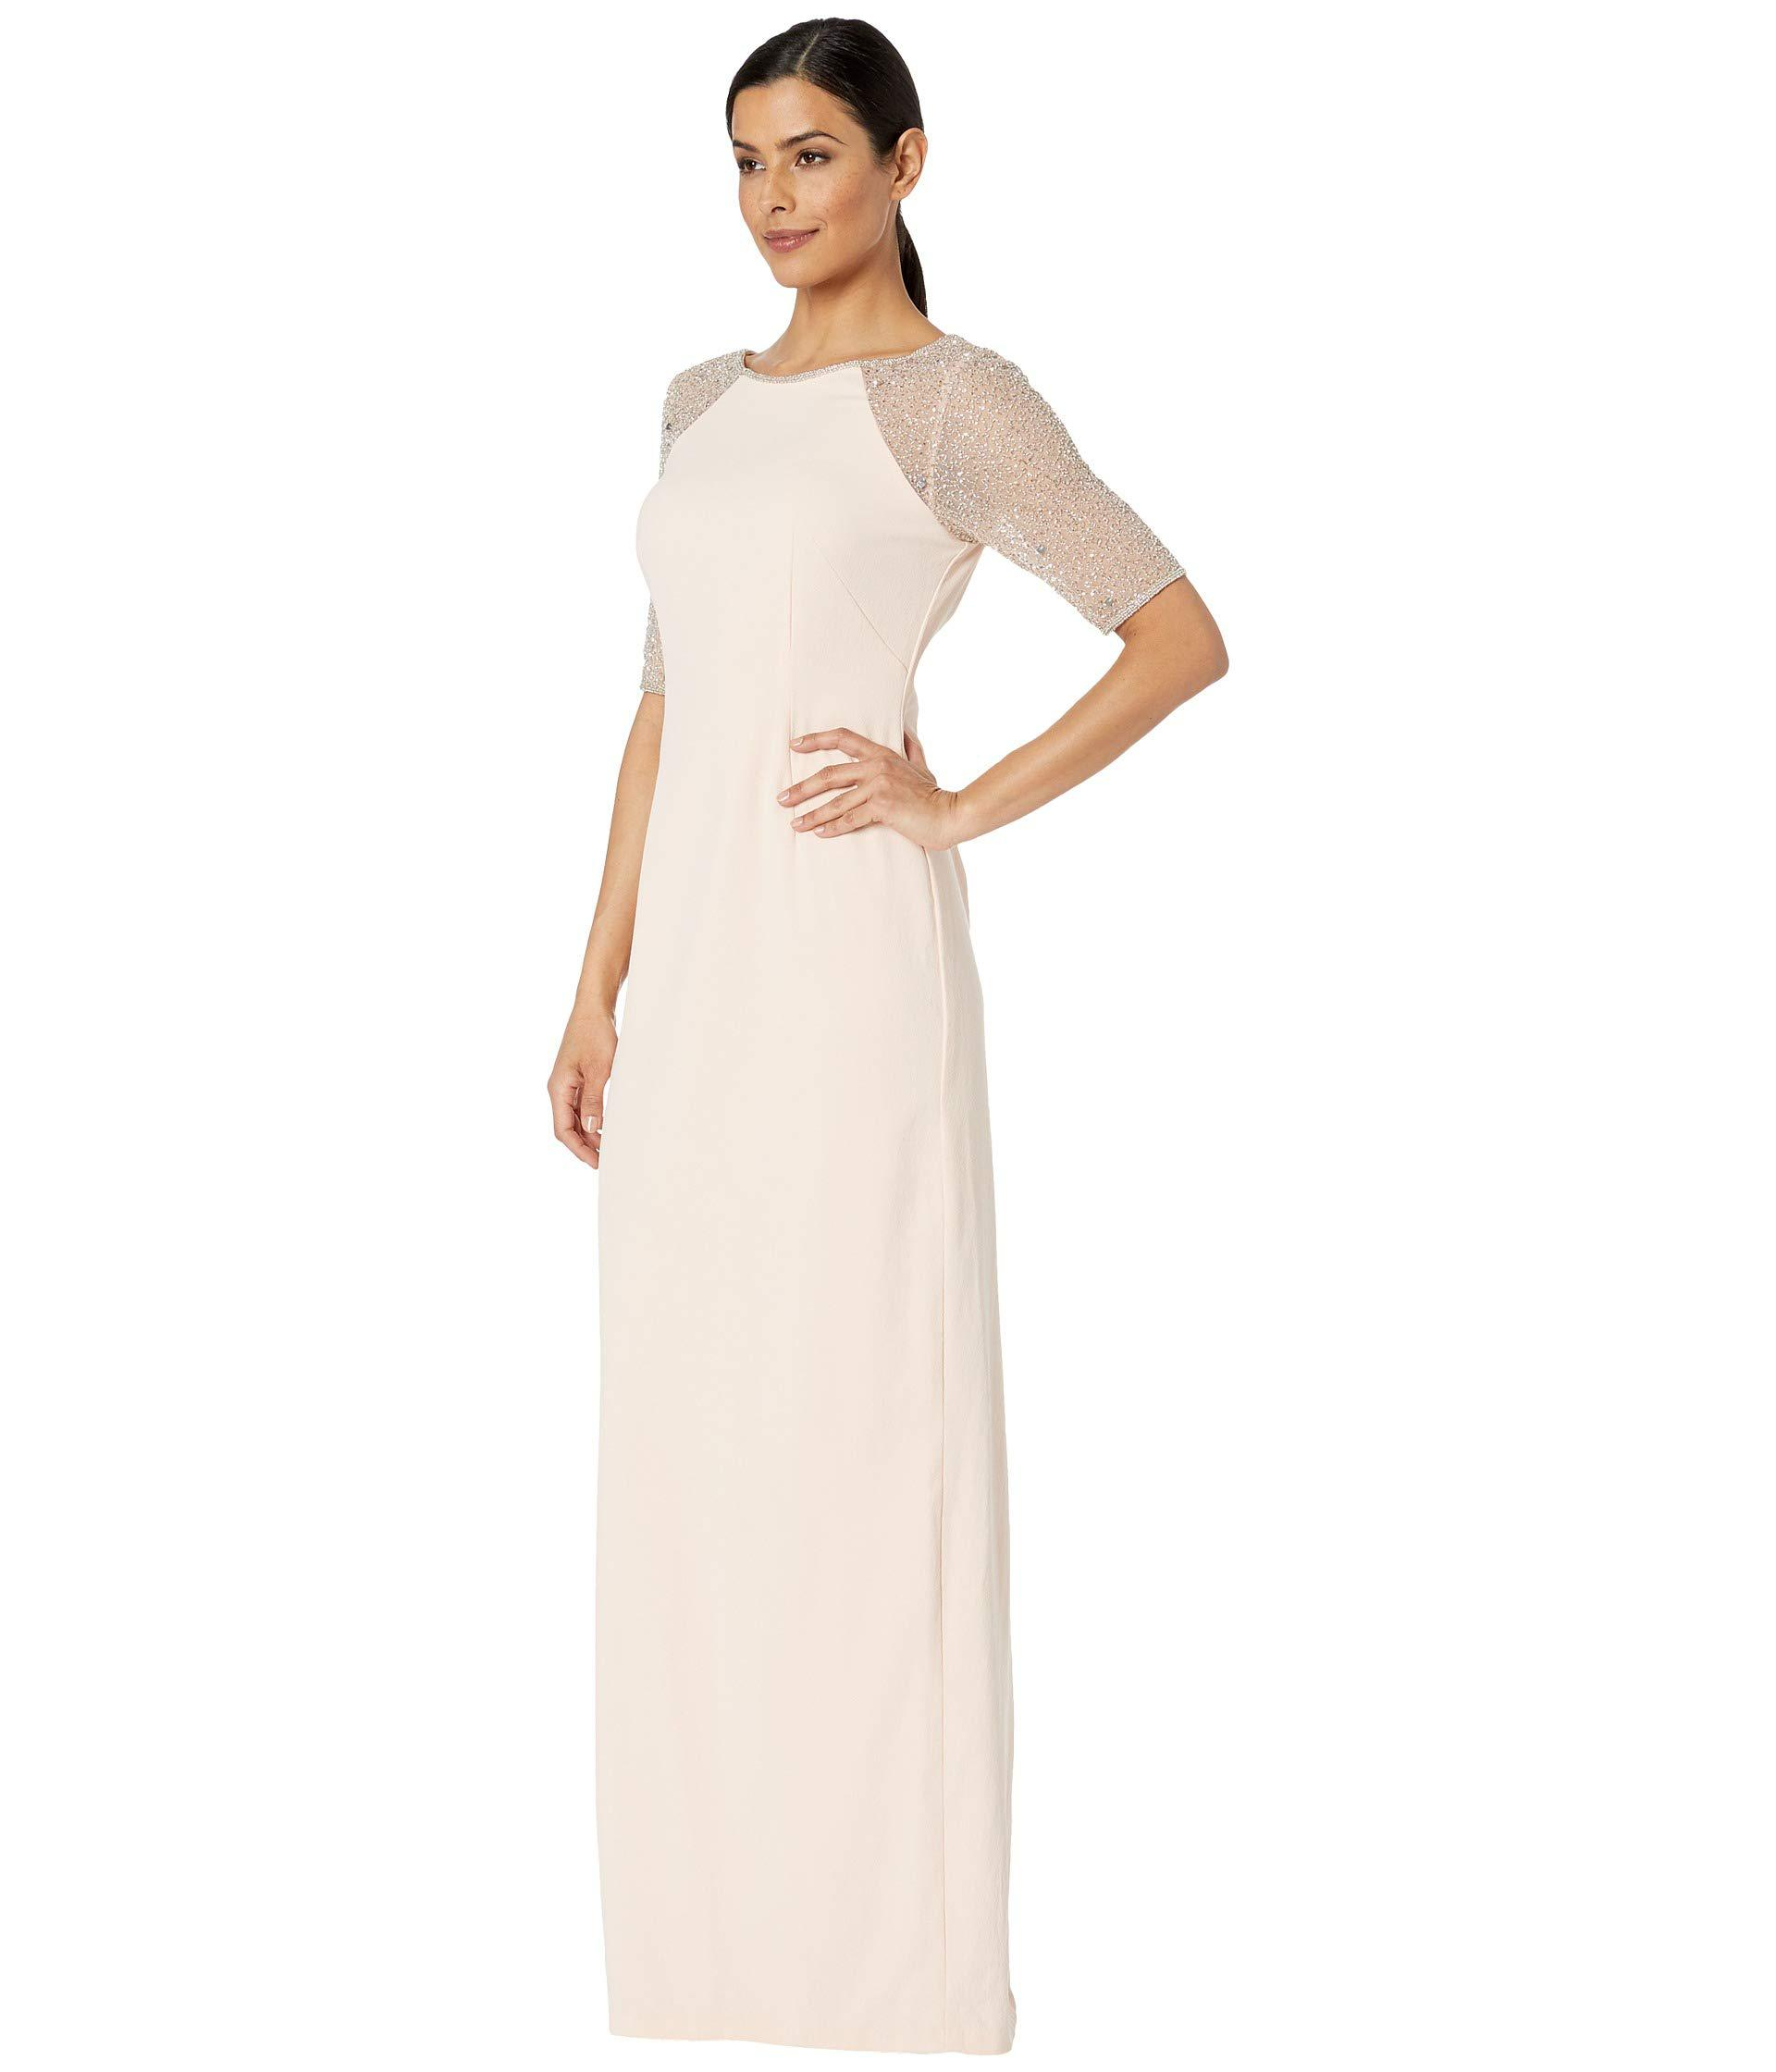 a803f402c826 Lyst - Adrianna Papell Short Sleeve Beaded Gown - Save 43%